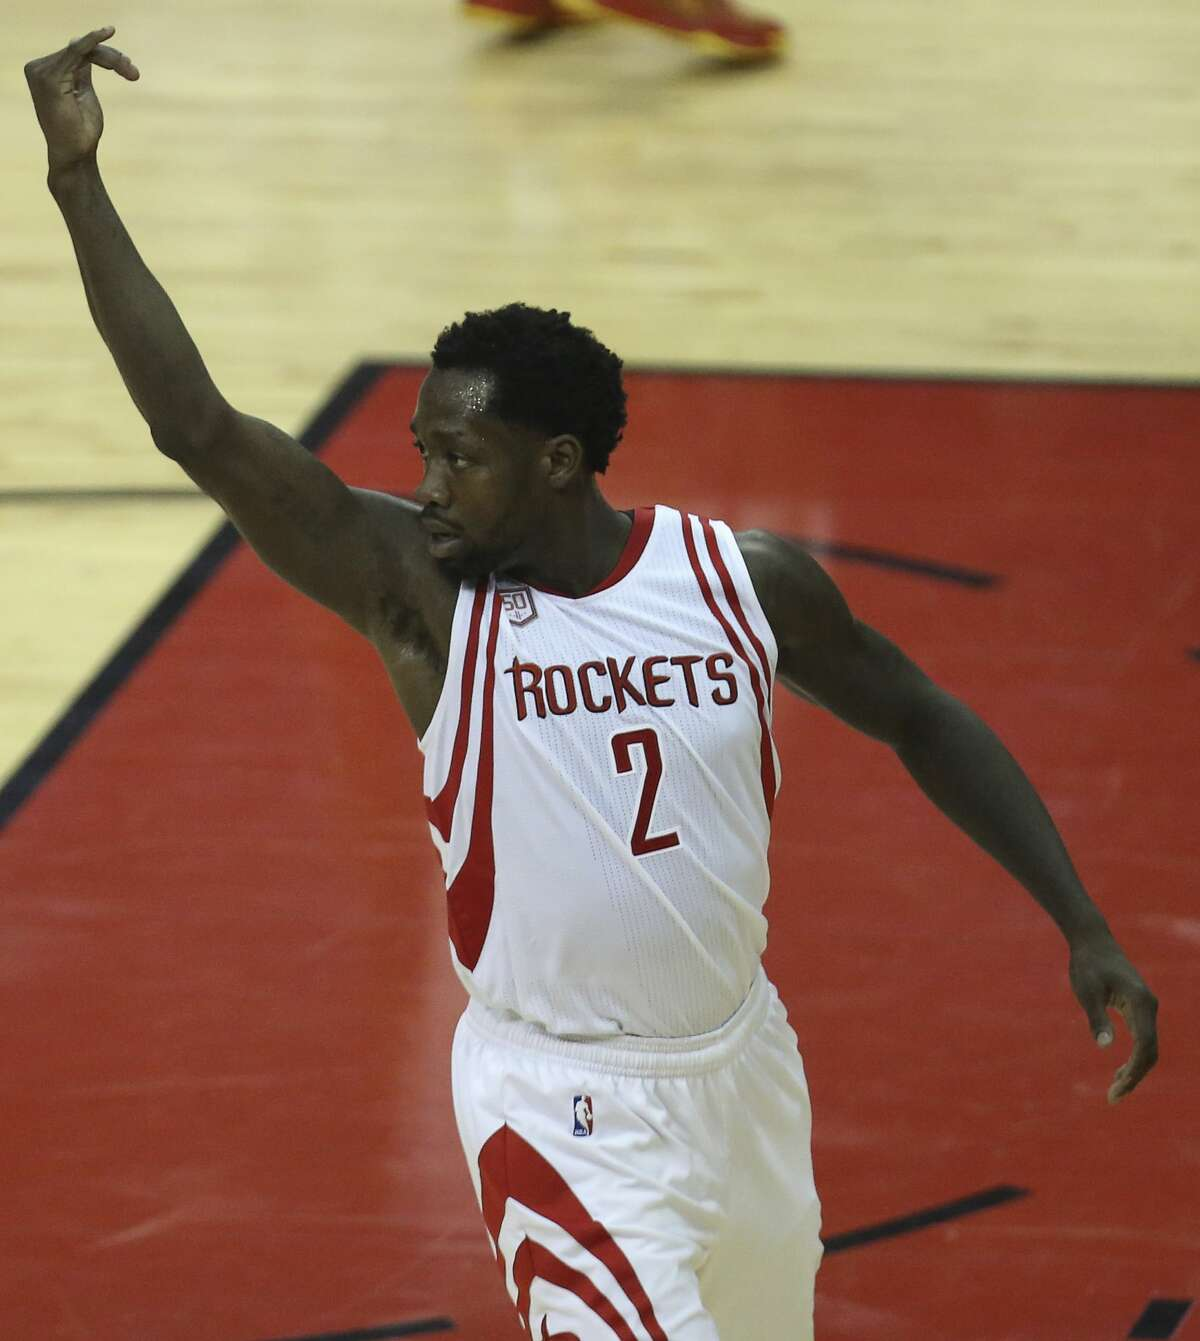 Houston Rockets guard Patrick Beverley (2) celebrates his score as the Houston Rockets take on the Oklahoma City Thunder during the second quarter in Game 2 of the first-round playoff series at Toyota Center Wednesday, April 19, 2017, in Houston. ( Yi-Chin Lee / Houston Chronicle )